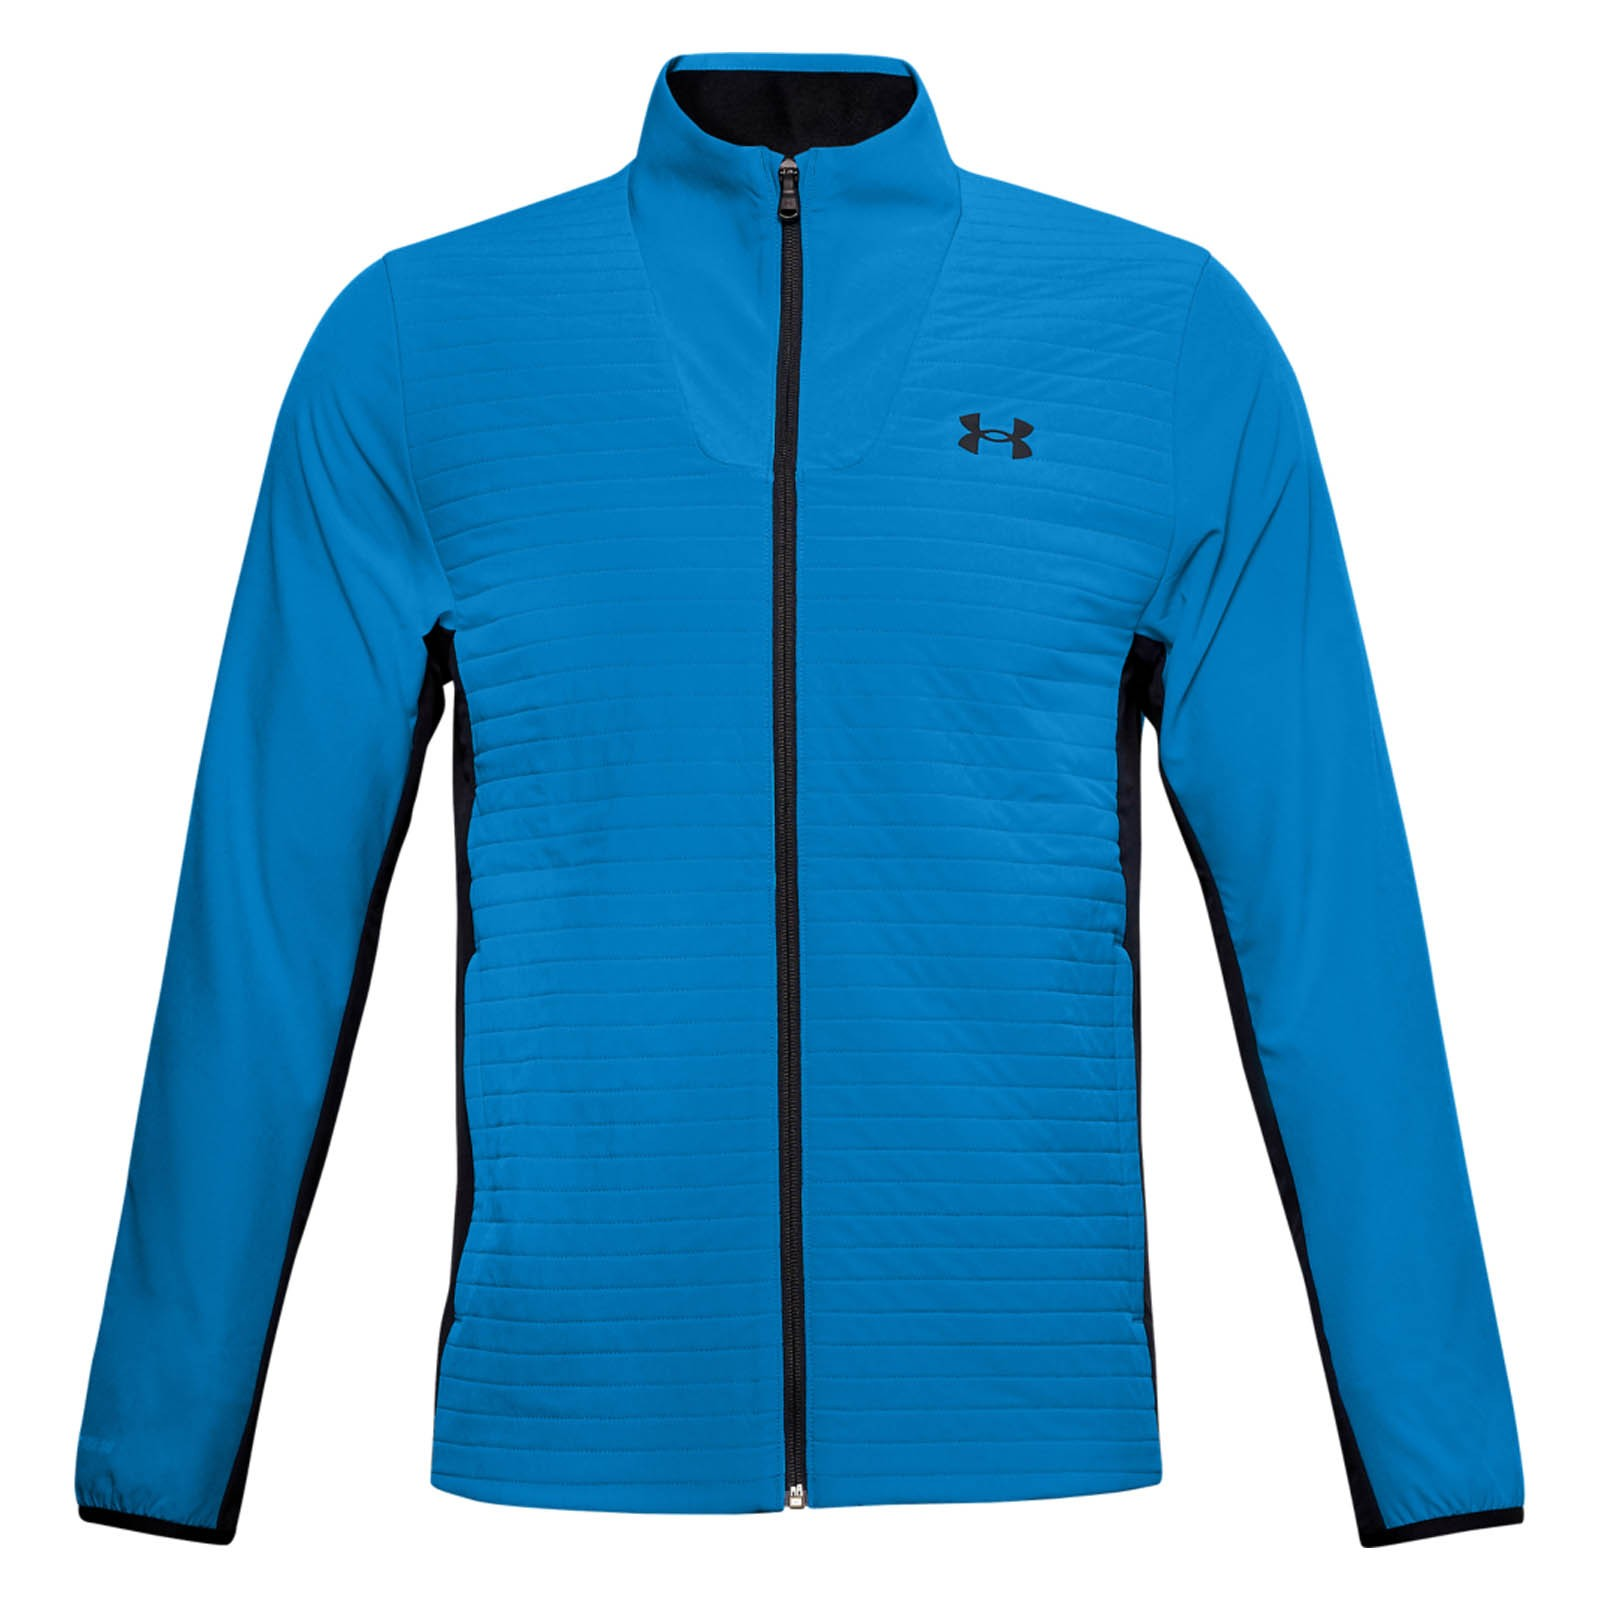 Under Armour Storm Revo Jackets